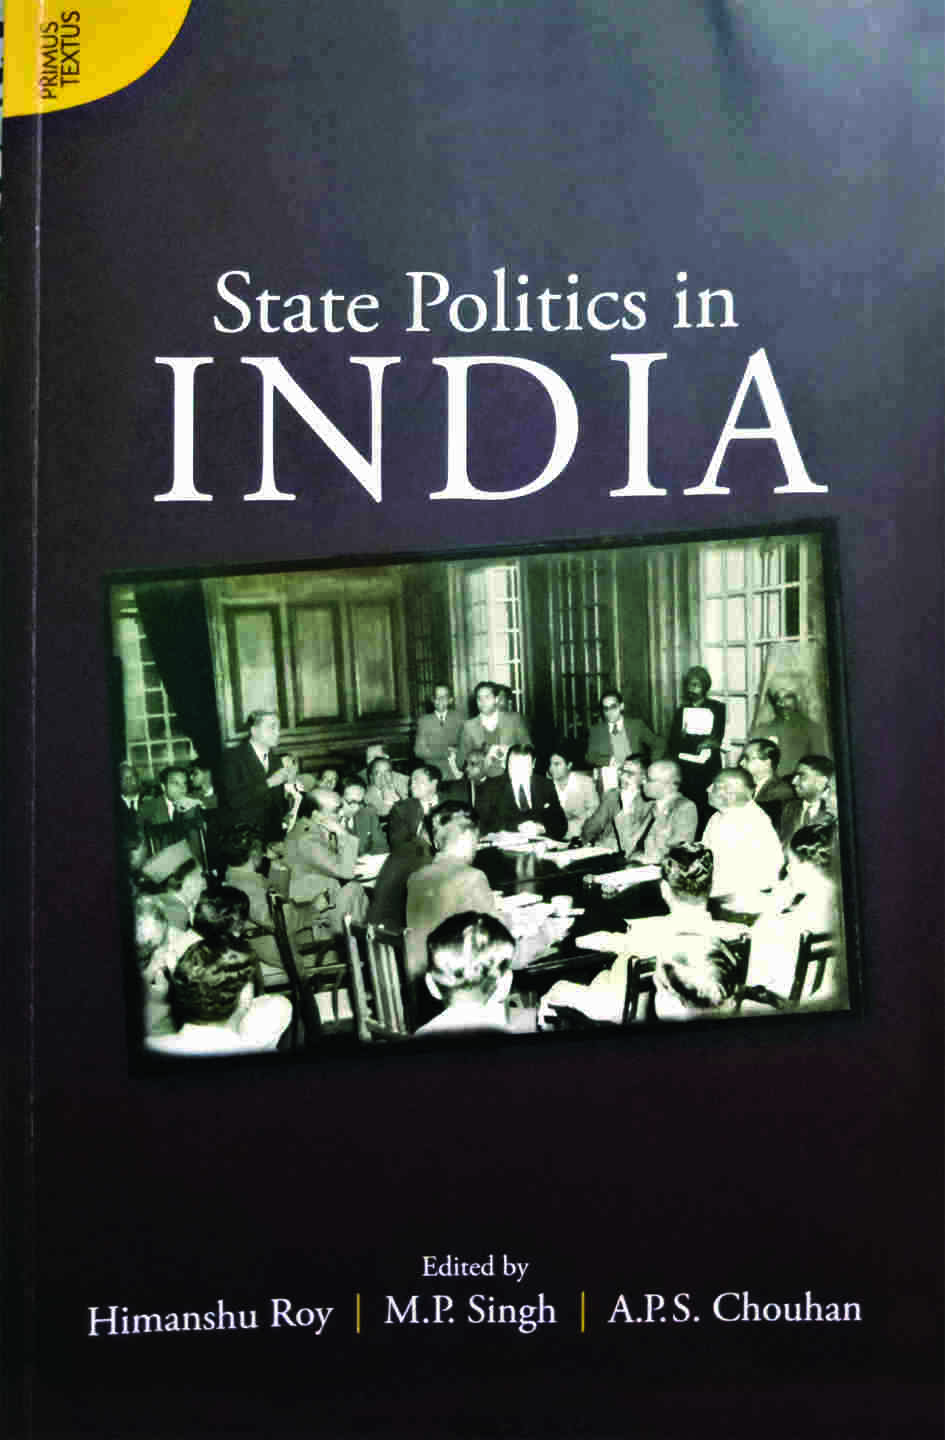 Greater depths of state politics in India